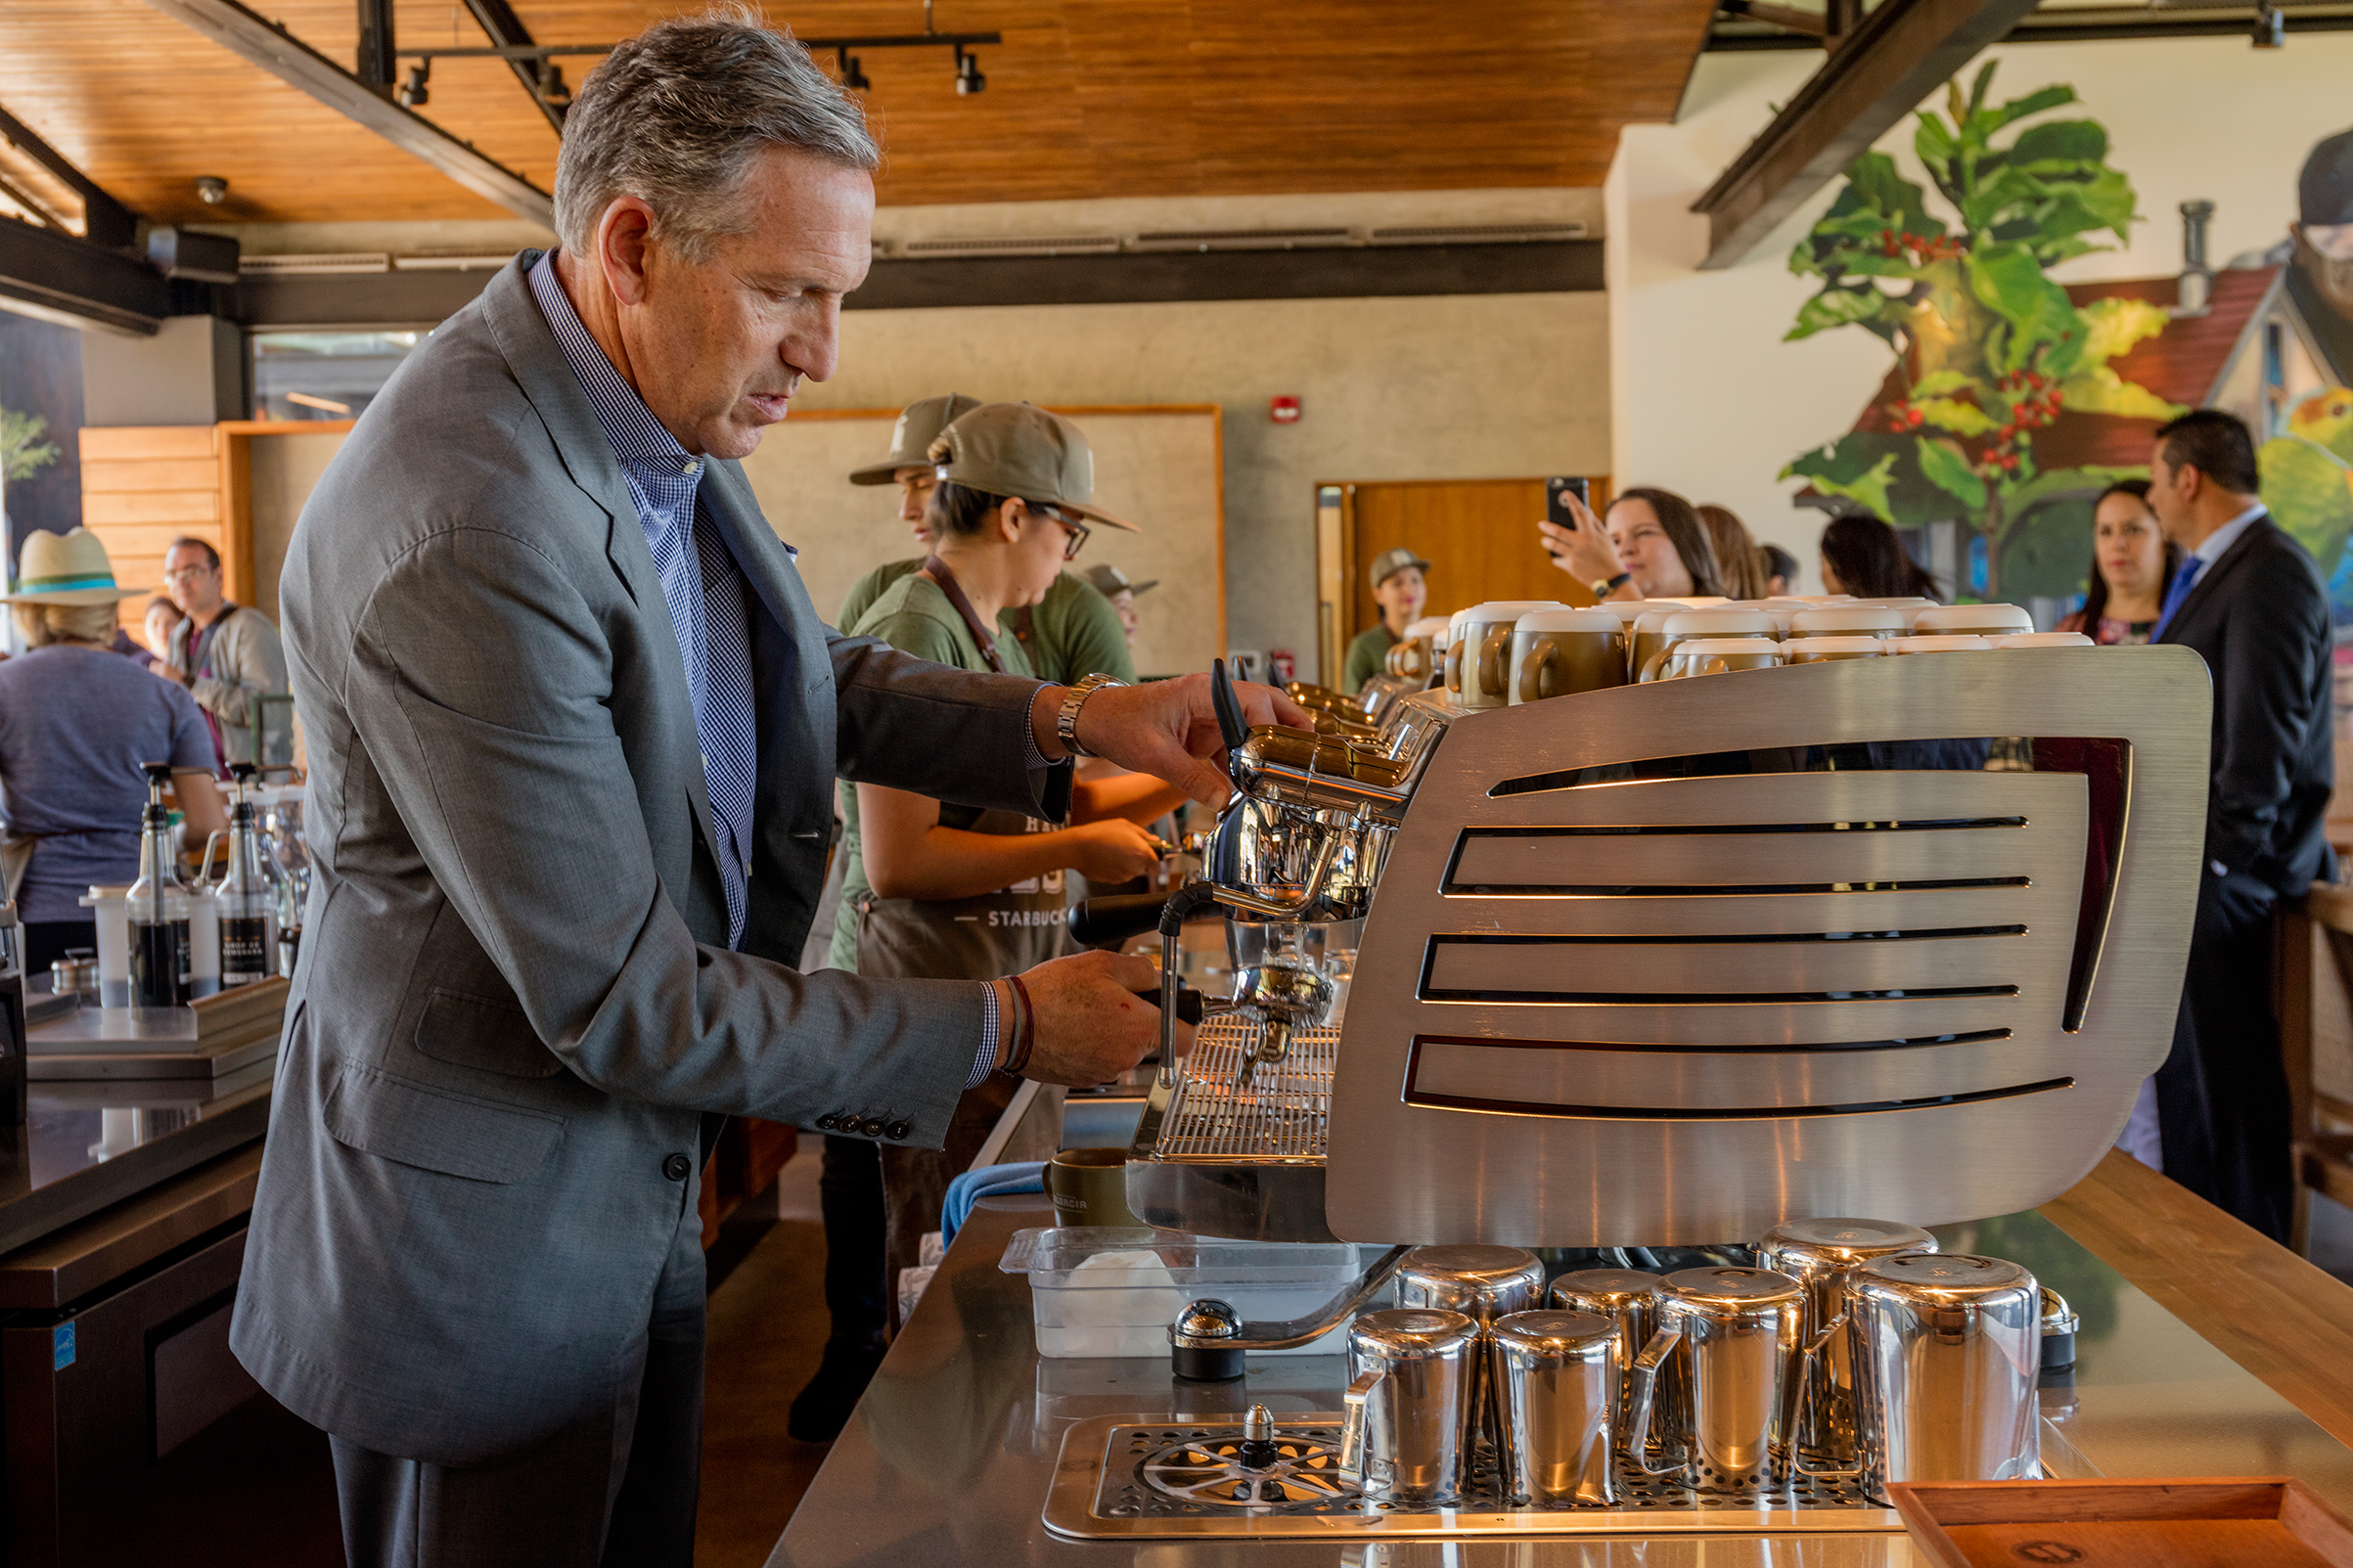 Longtime Starbucks boss Howard Schultz brews a cup of coffee at the company's Costa Rican coffee farm